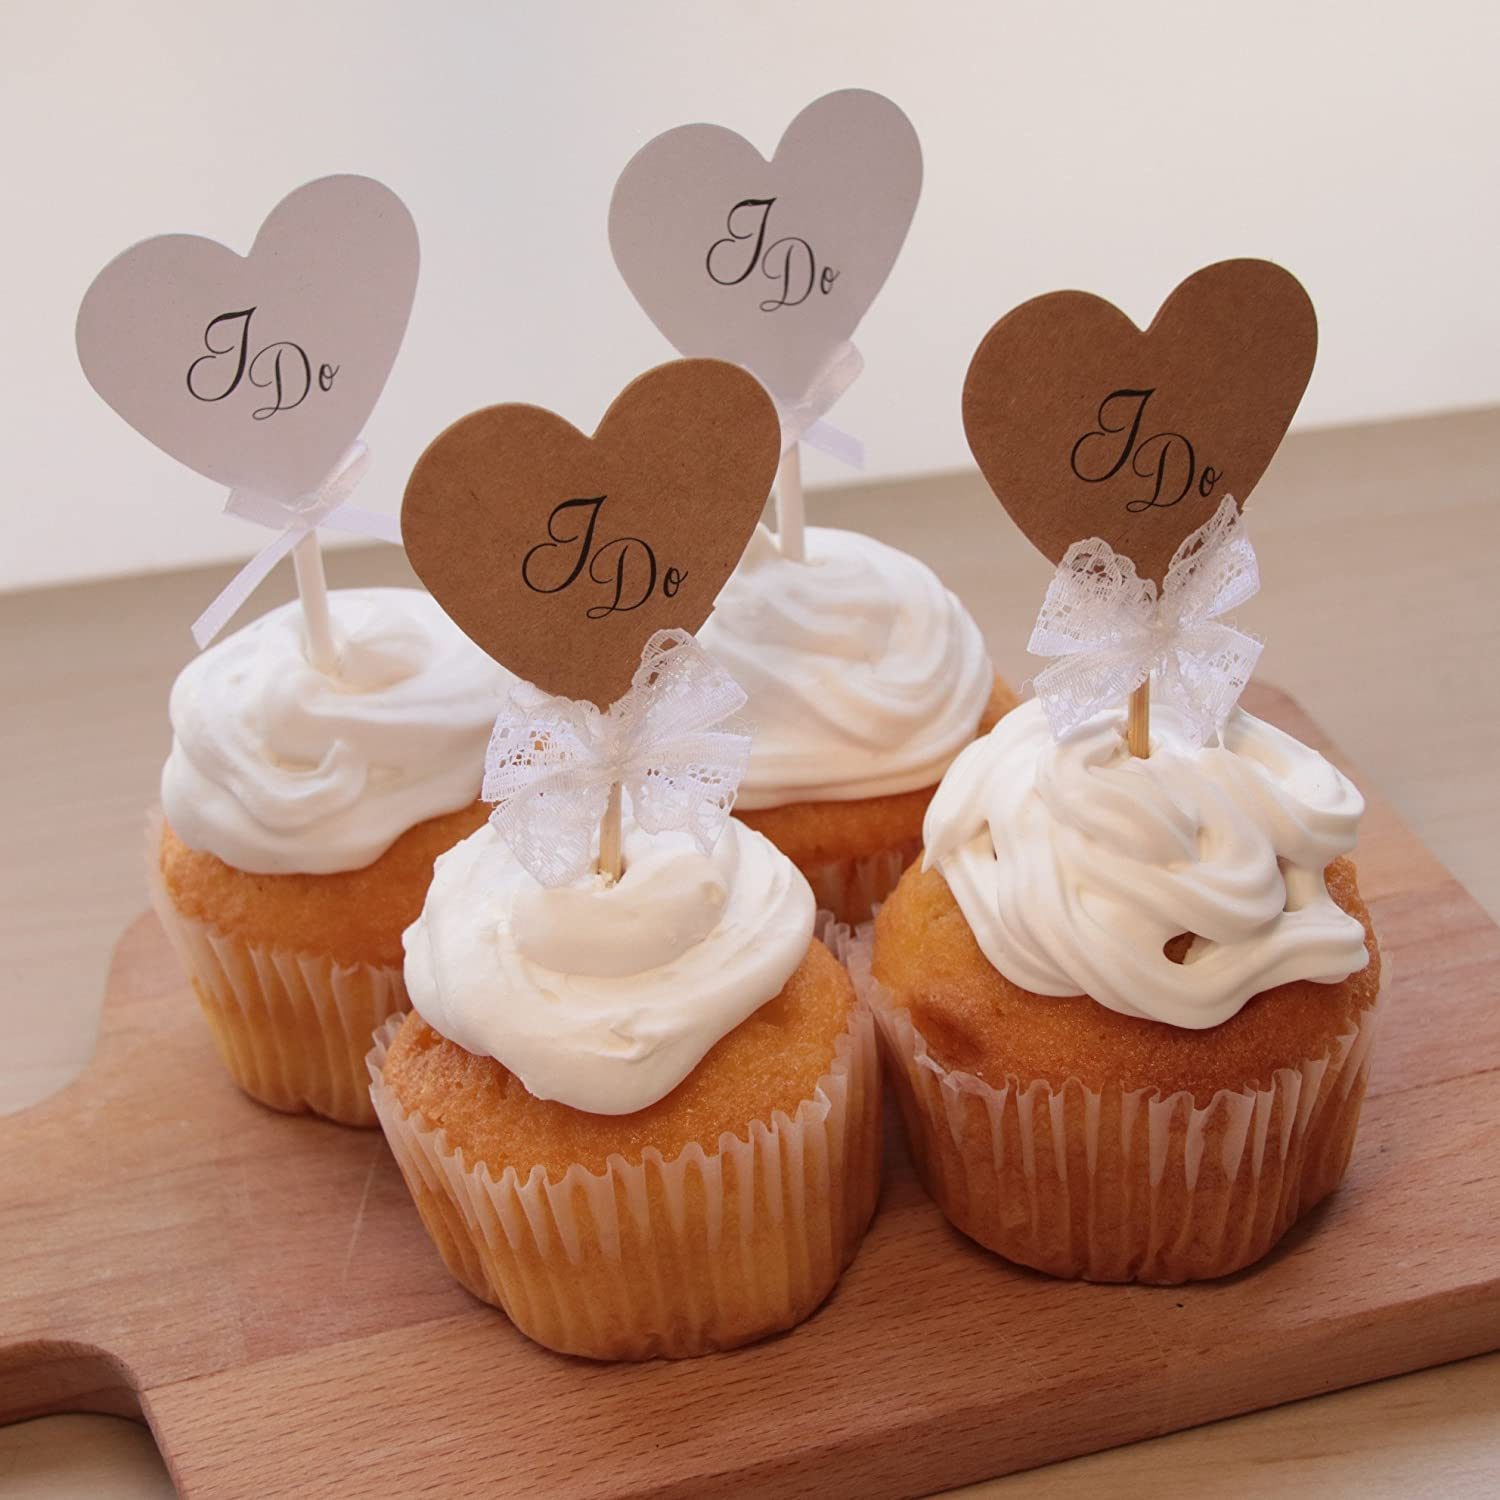 Amazoncom 12 Pack Vintage Rustic I Do Heart Shaped Cake Toppers